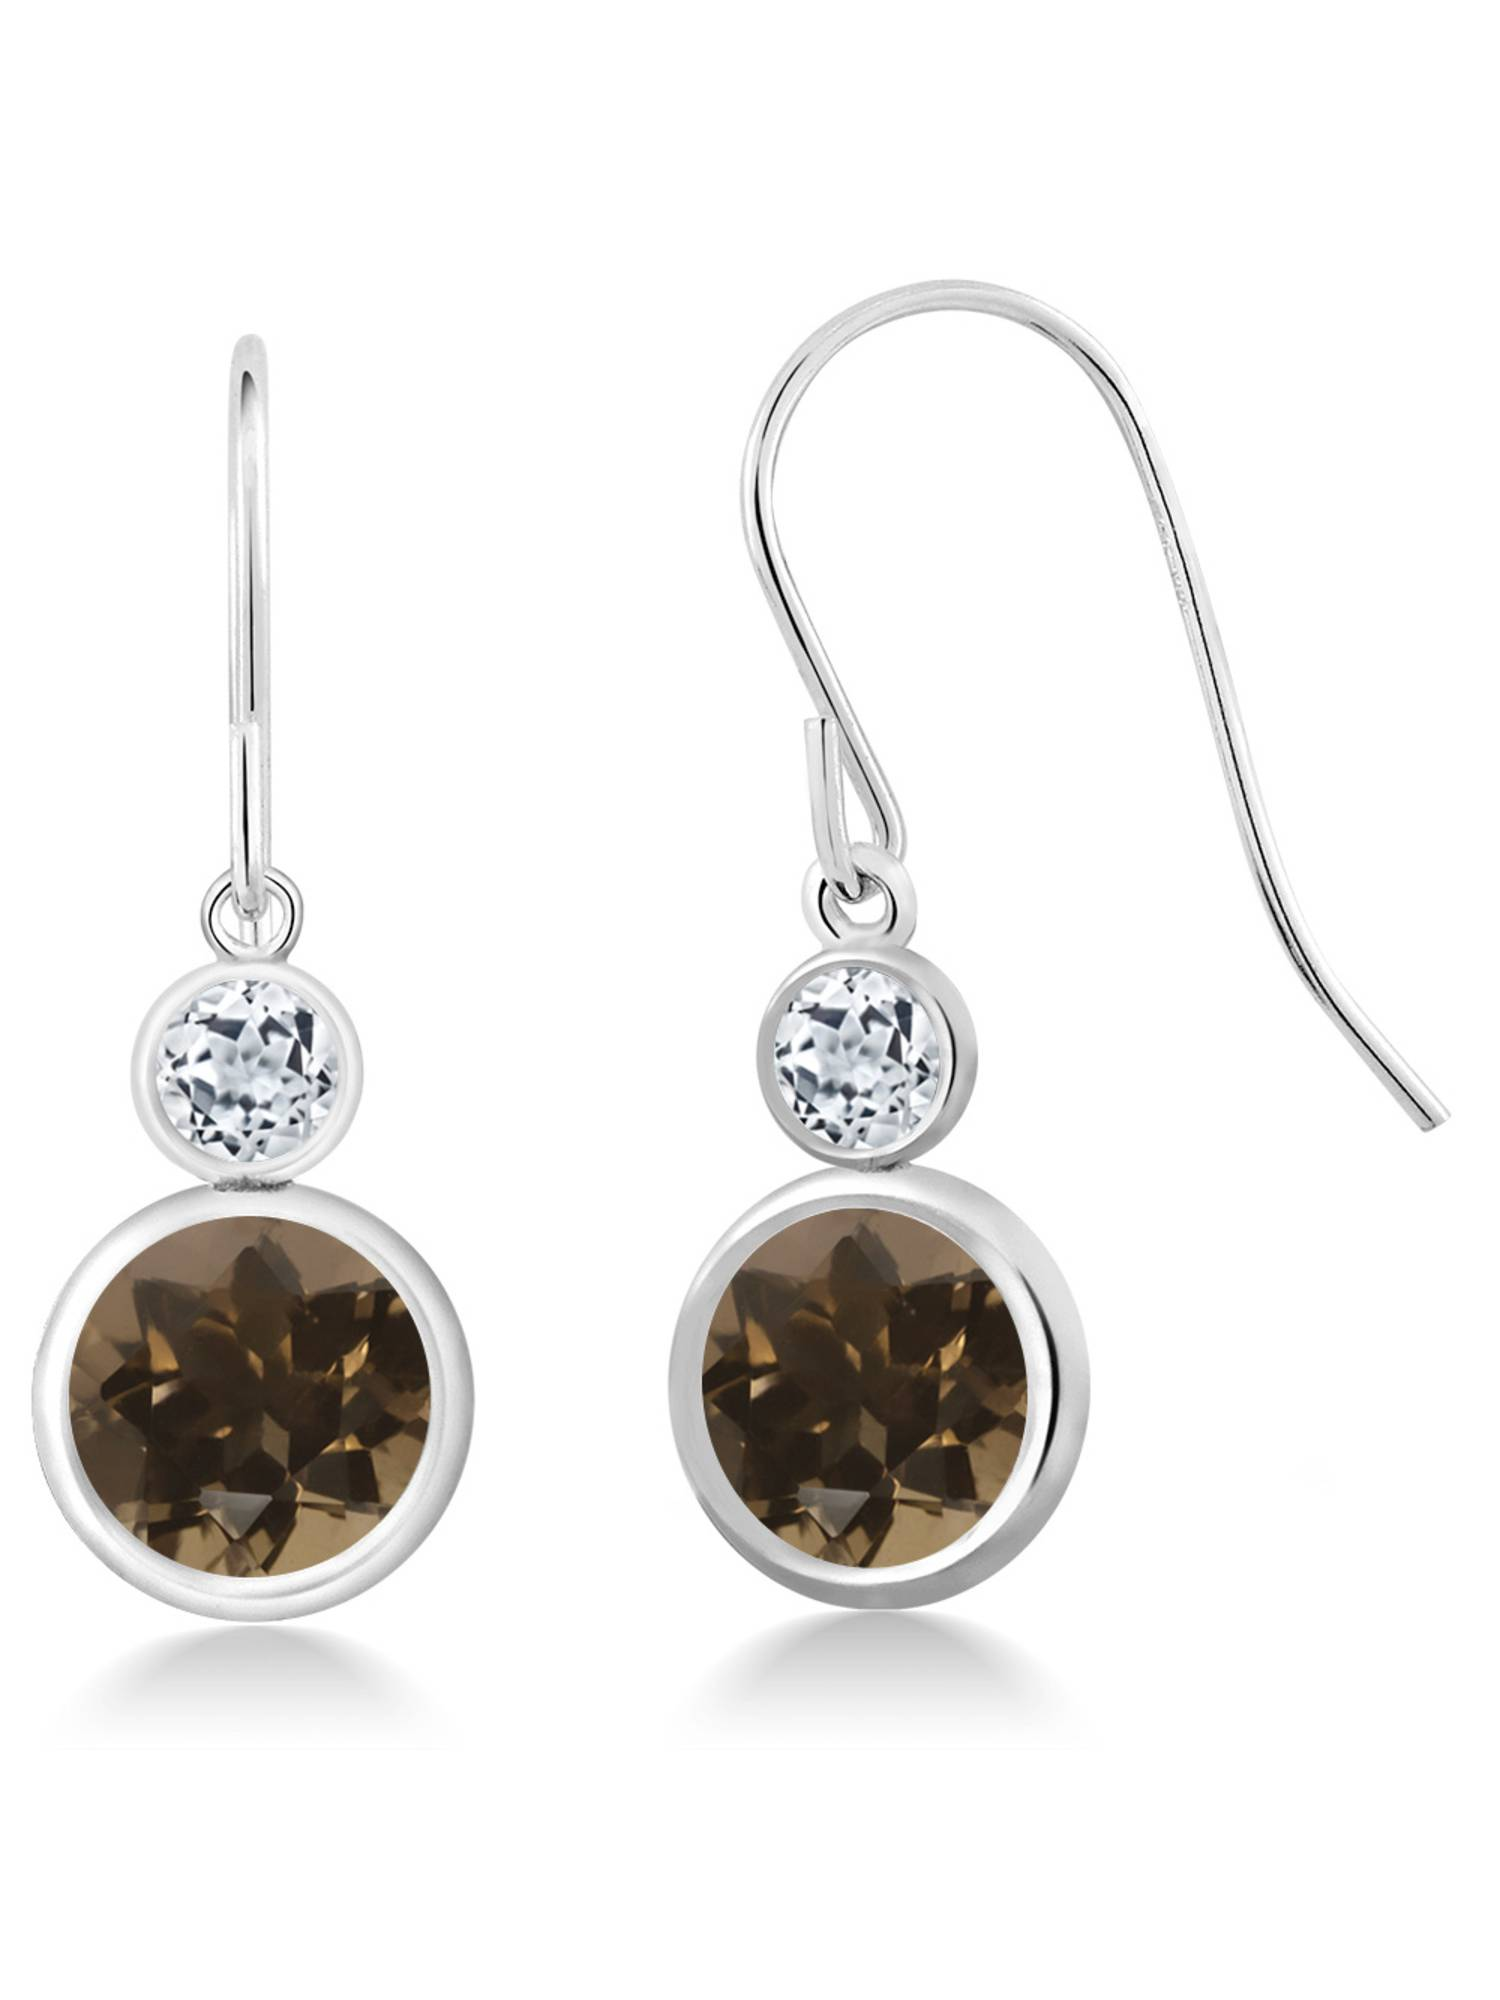 3.68 Ct Round Brown Smoky Quartz White Topaz 925 Sterling Silver Earrings